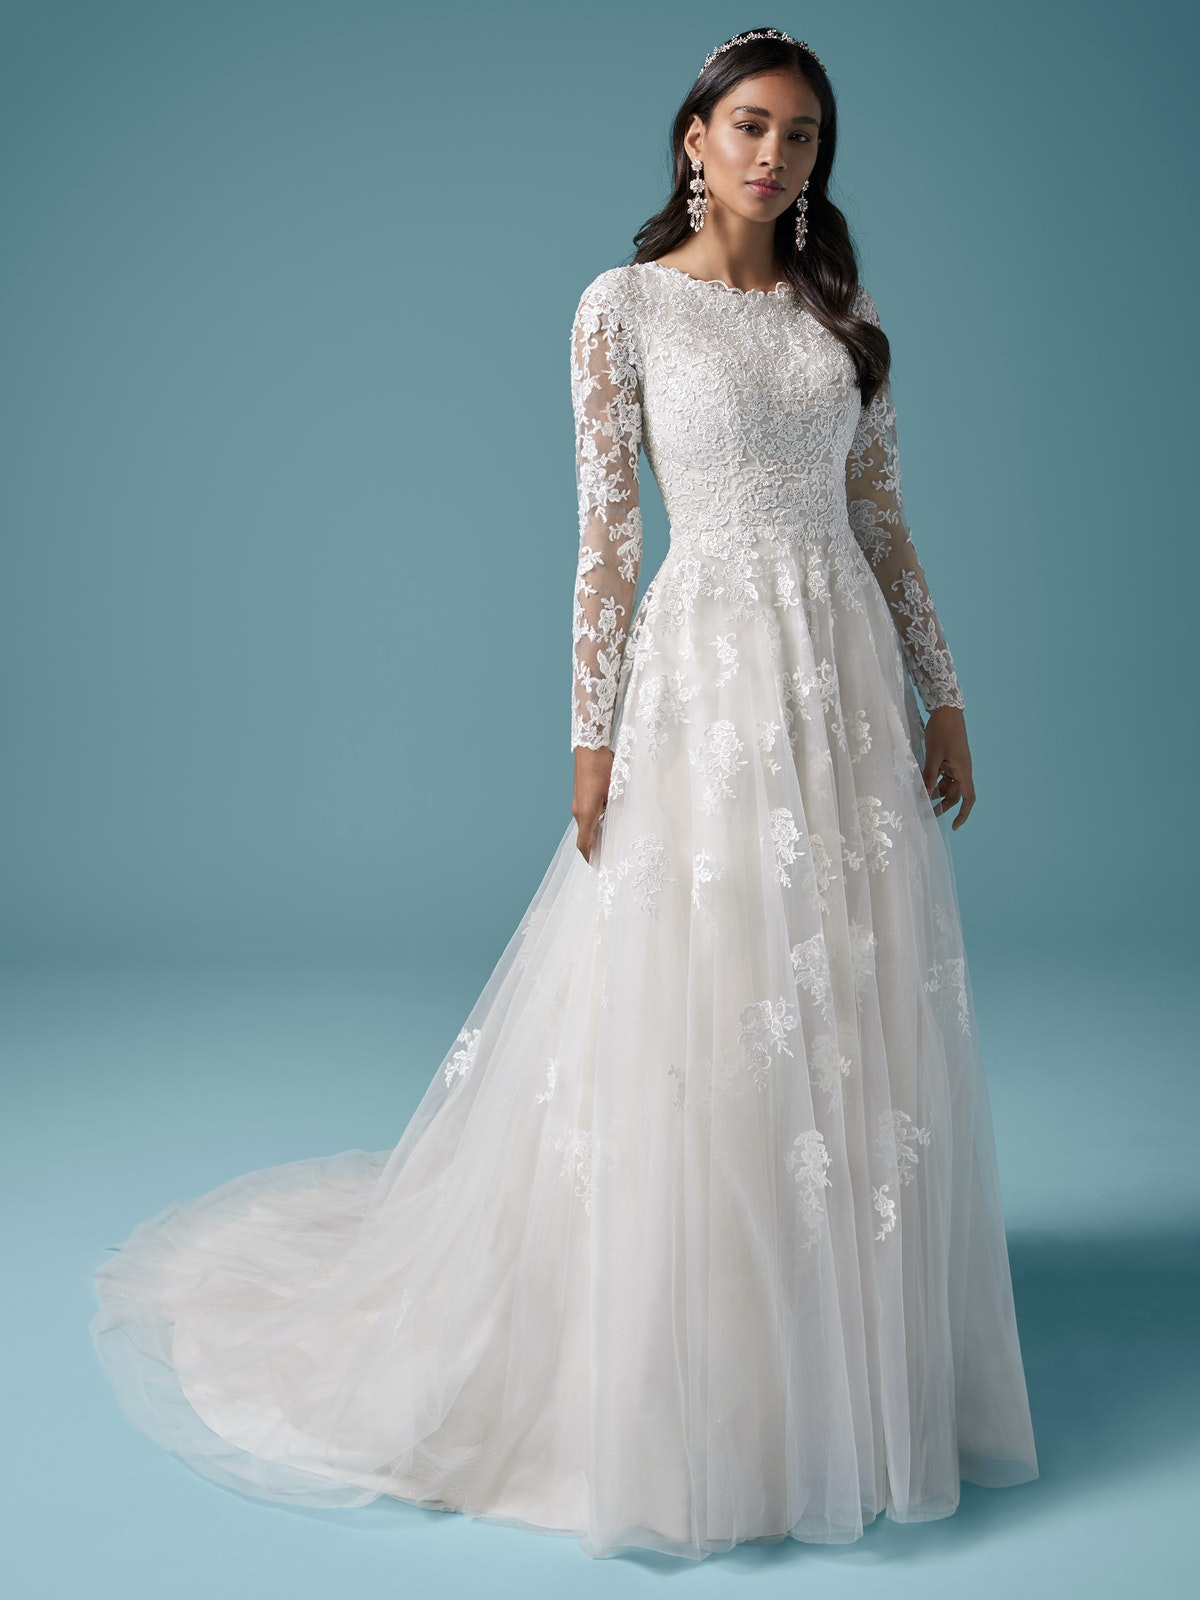 Maggie Sottero Warren 20MS682 Main